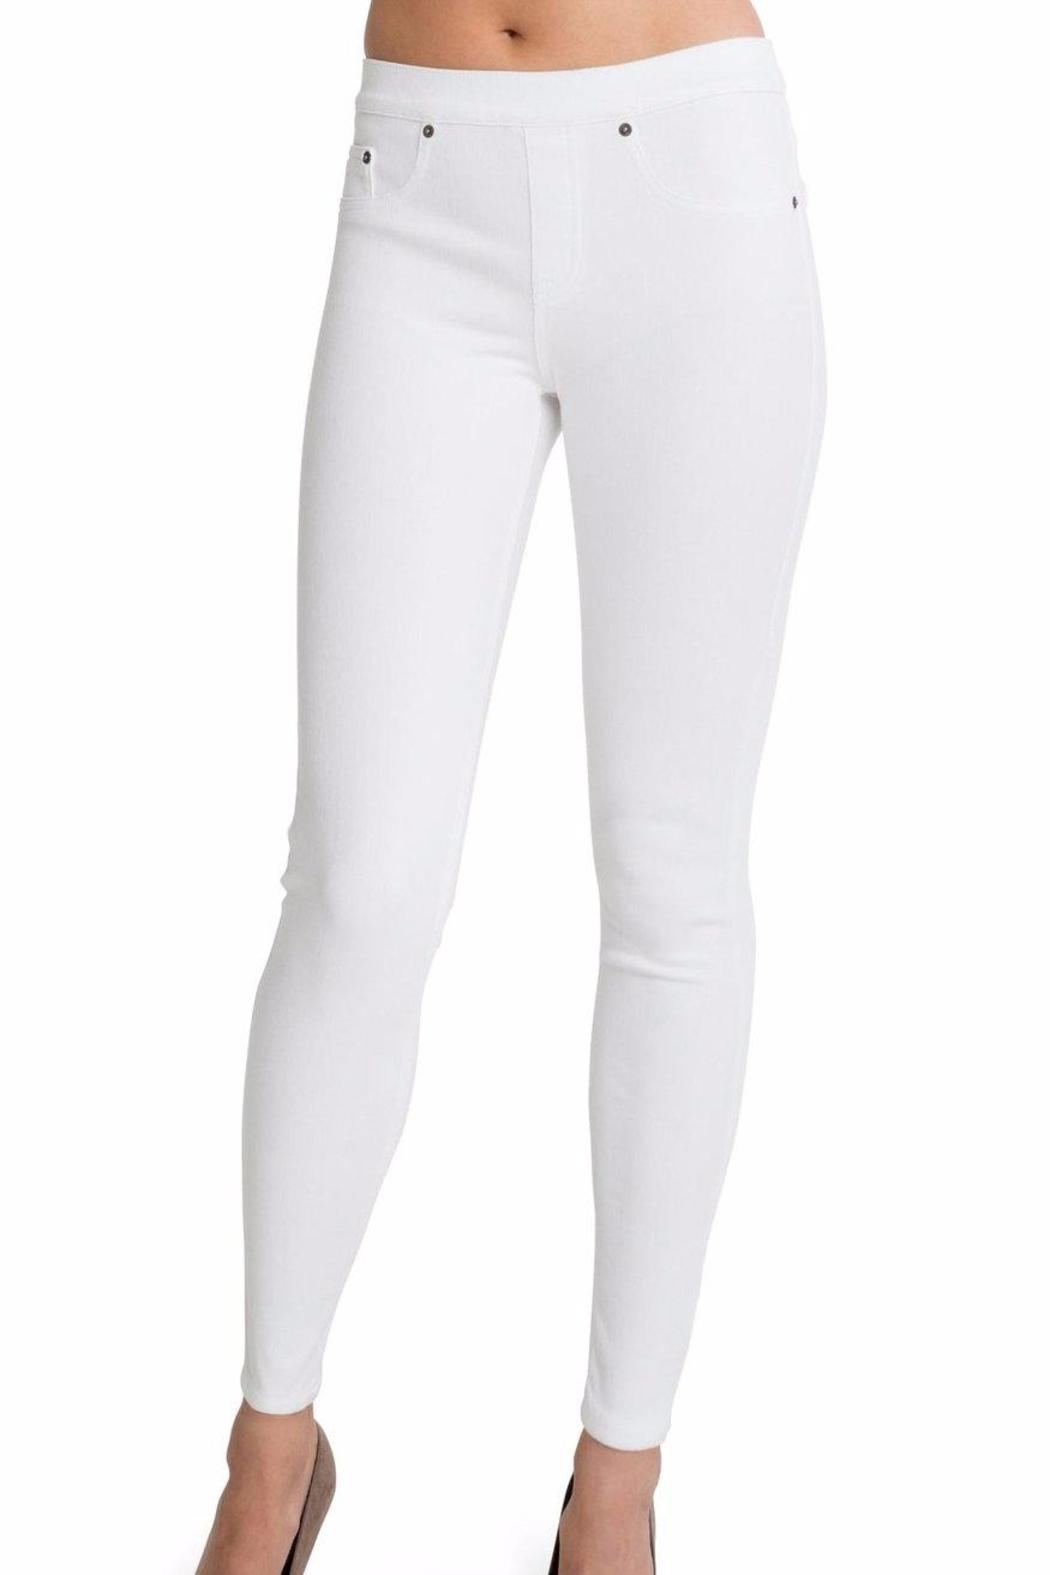 Spanx Denim Ankle Leggings from Statesboro by Sole — Shoptiques